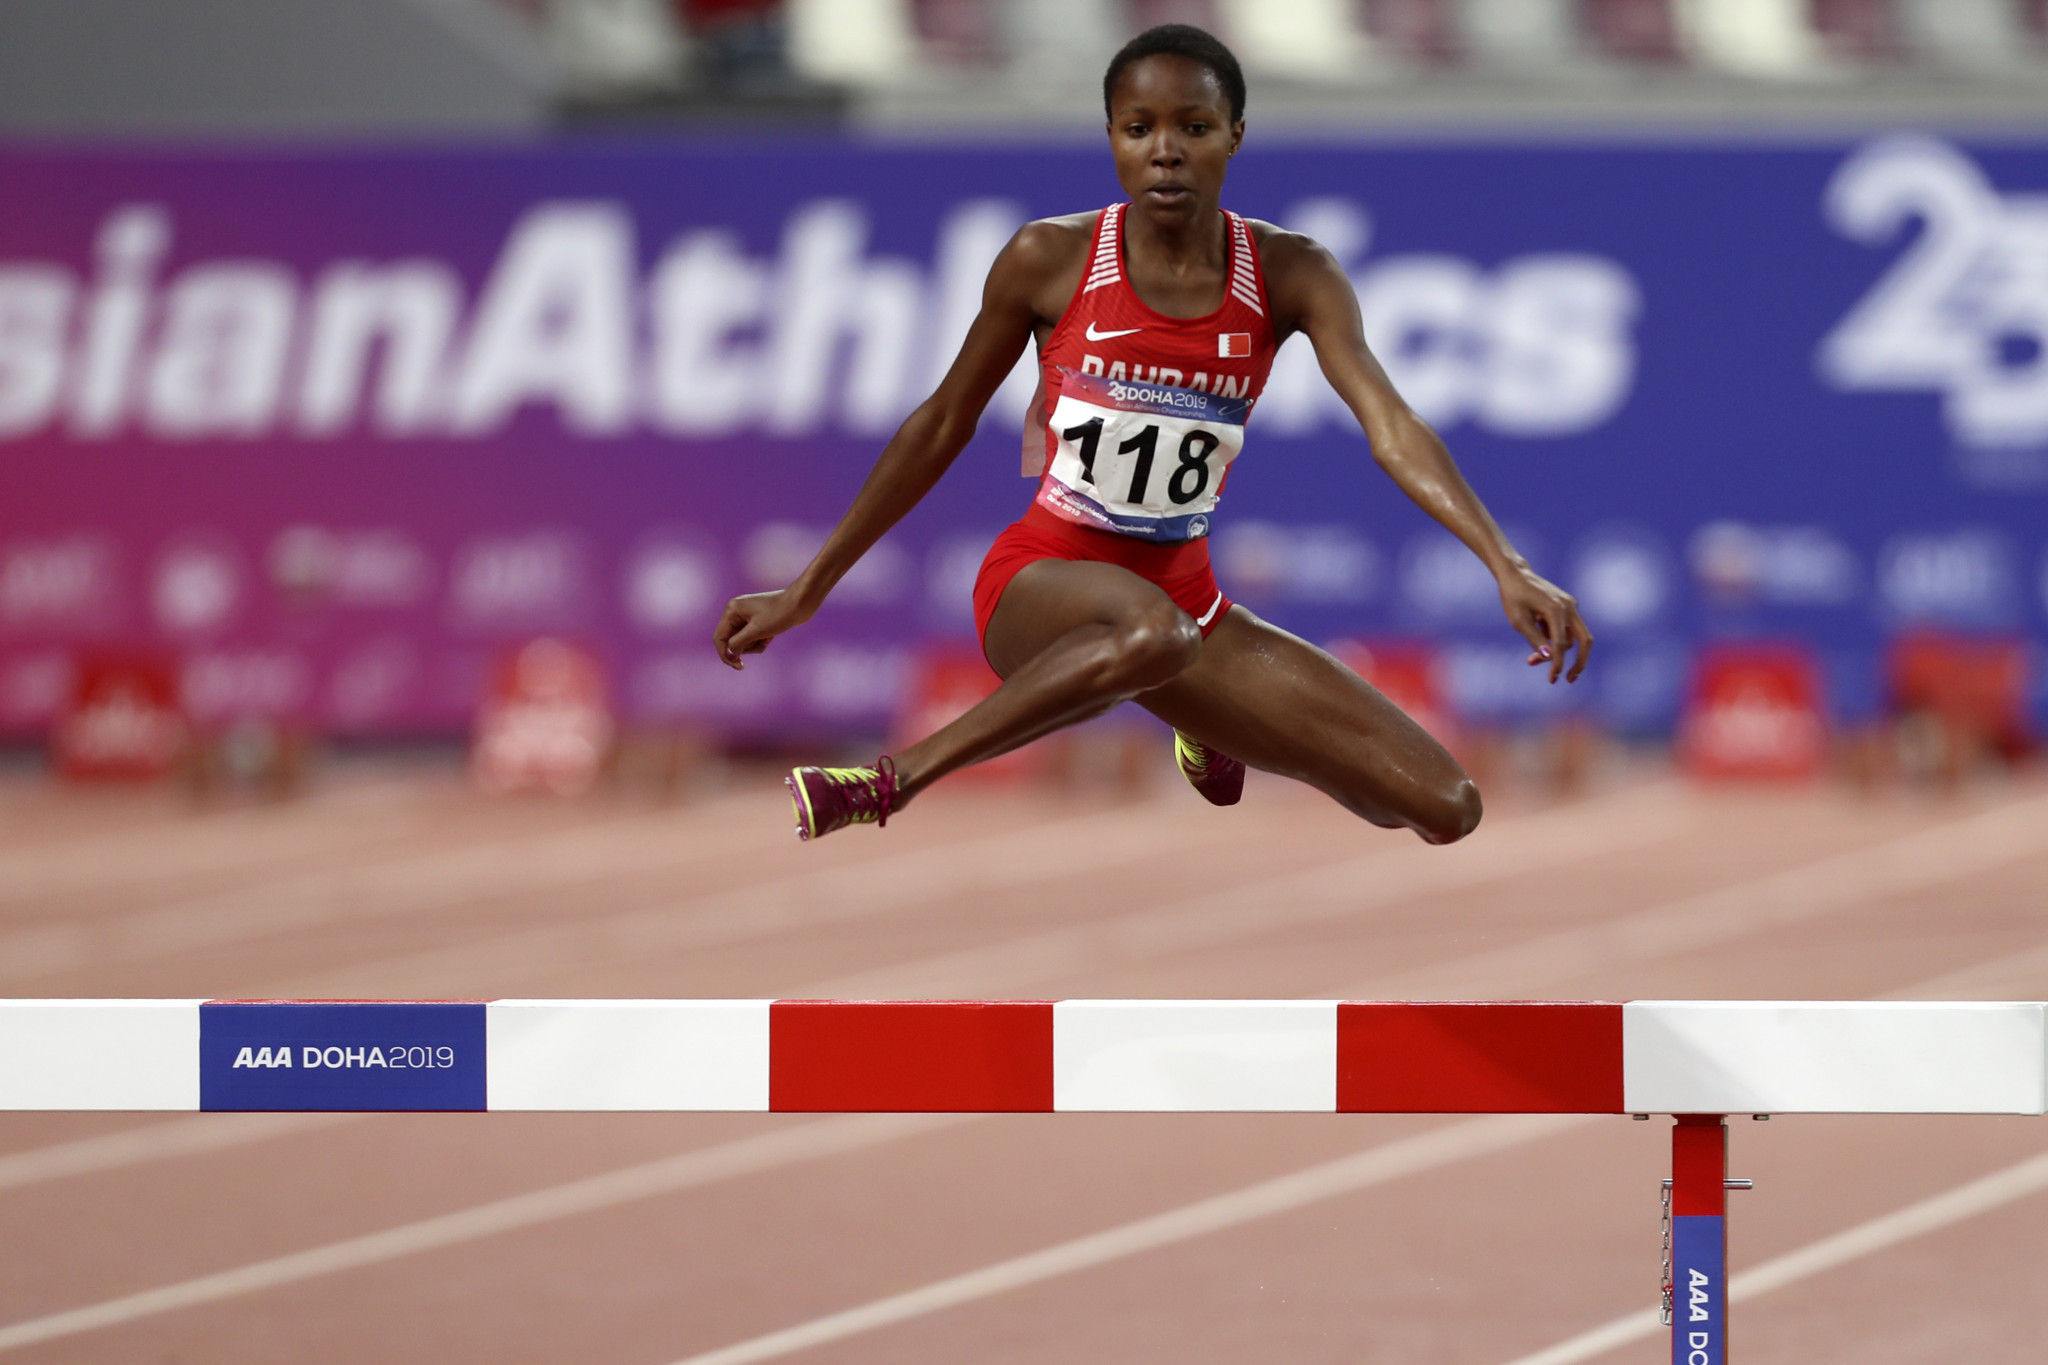 Bahrain's Winfred Mutile Yavi won the women's 3,000 metres steeplechase title on day three of the Asian Athletics Championships in Doha ©Getty Images